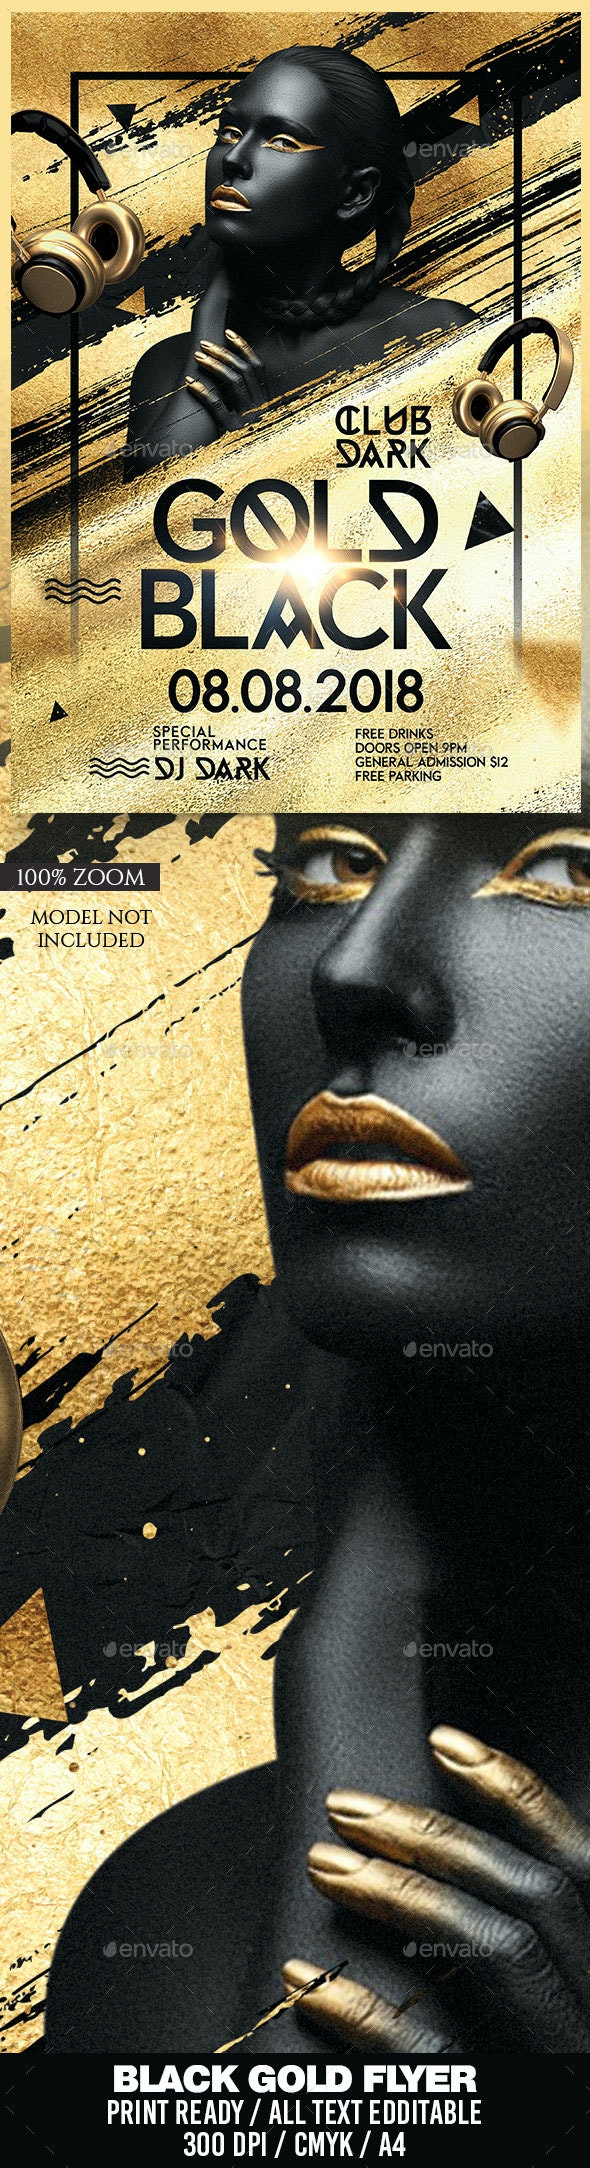 Gold Black Party Flyer - Clubs & Parties Events